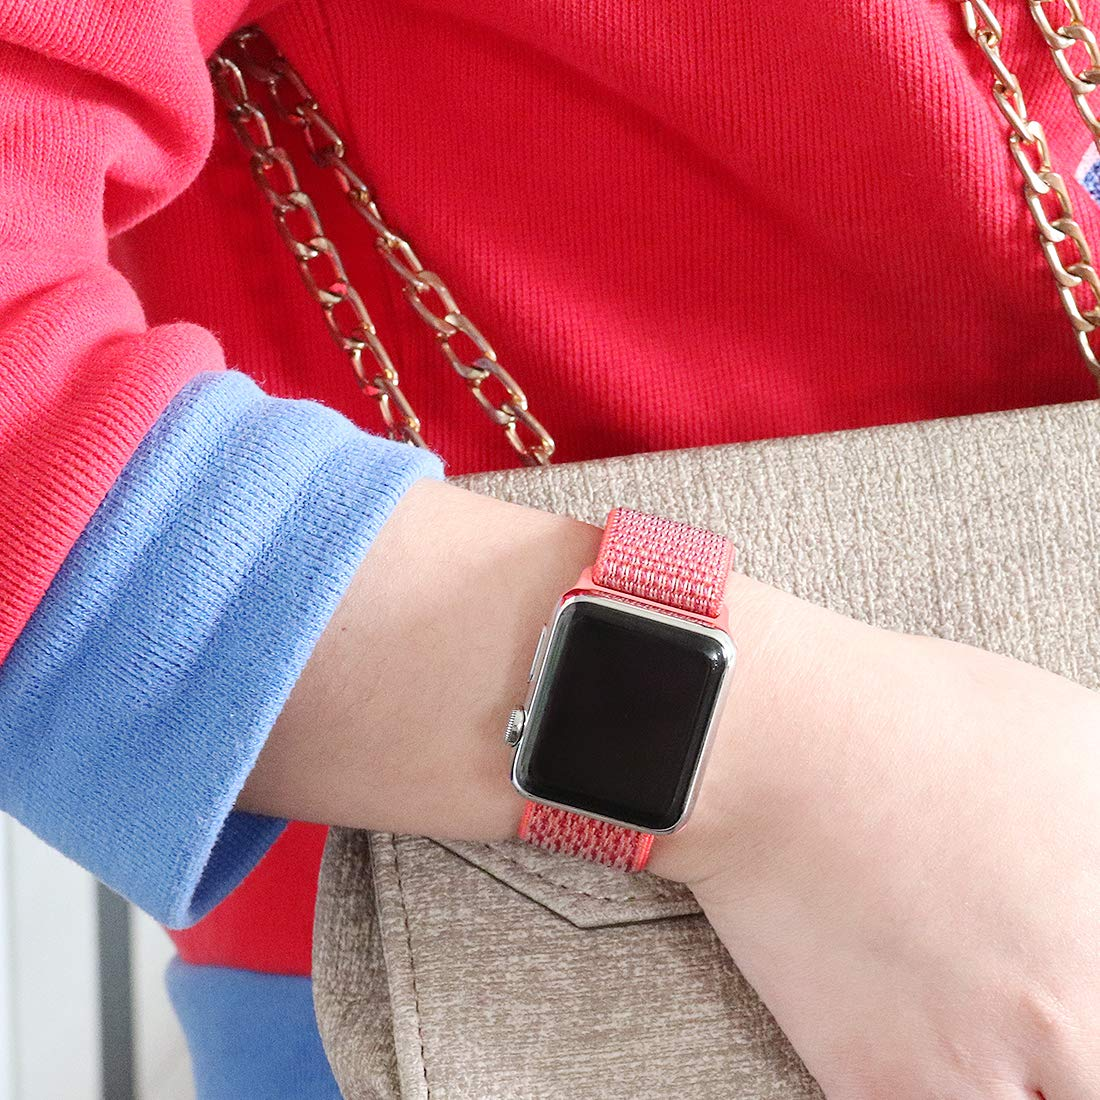 Apple watch nylon stpors strap Nectarine 2